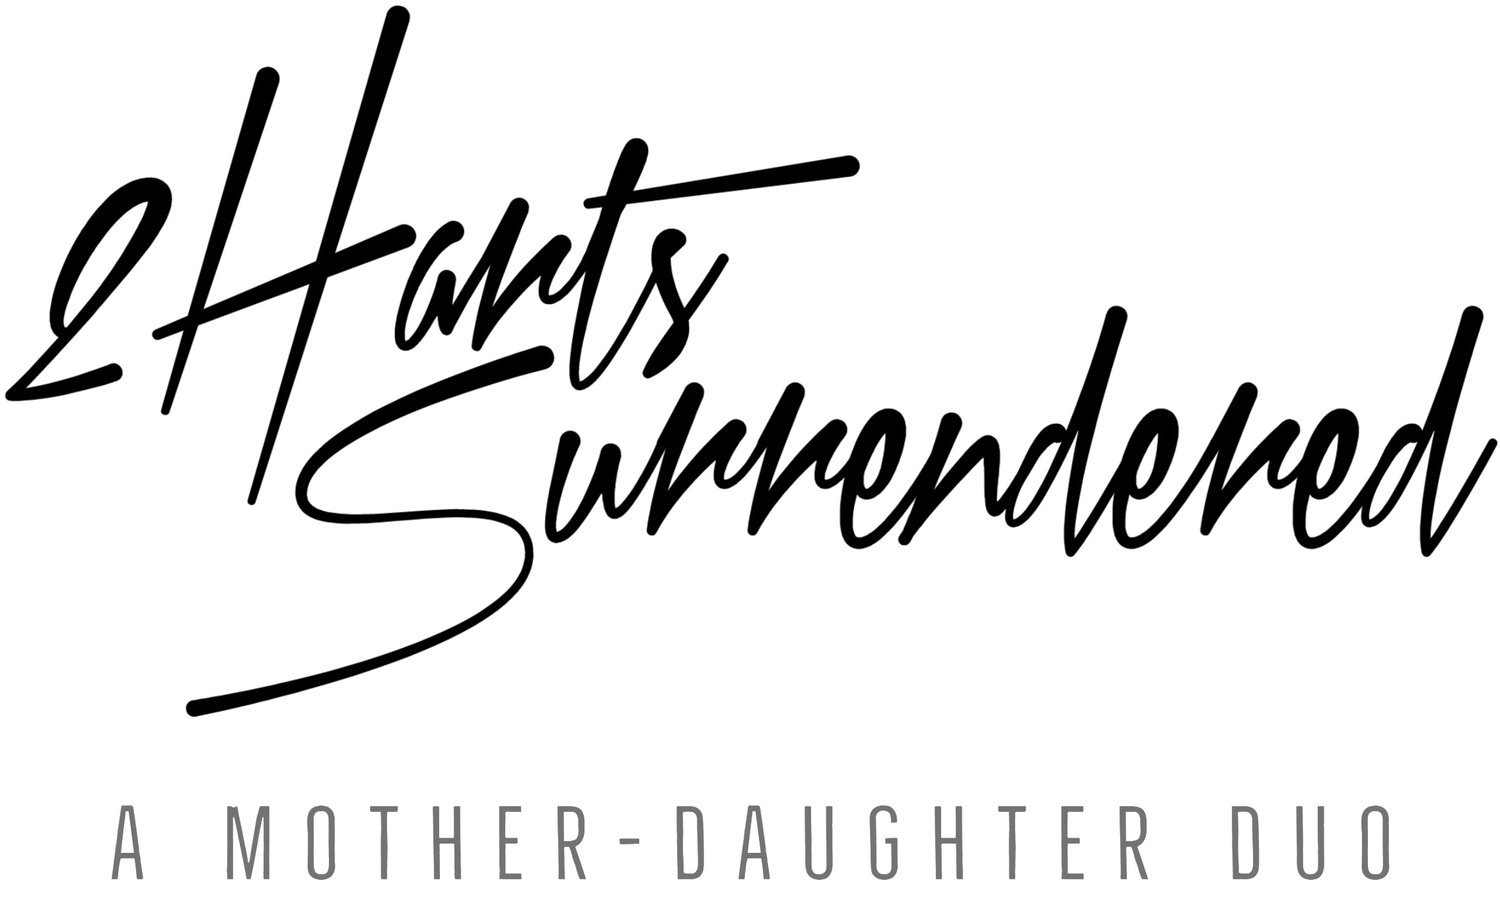 2Harts Surrendered